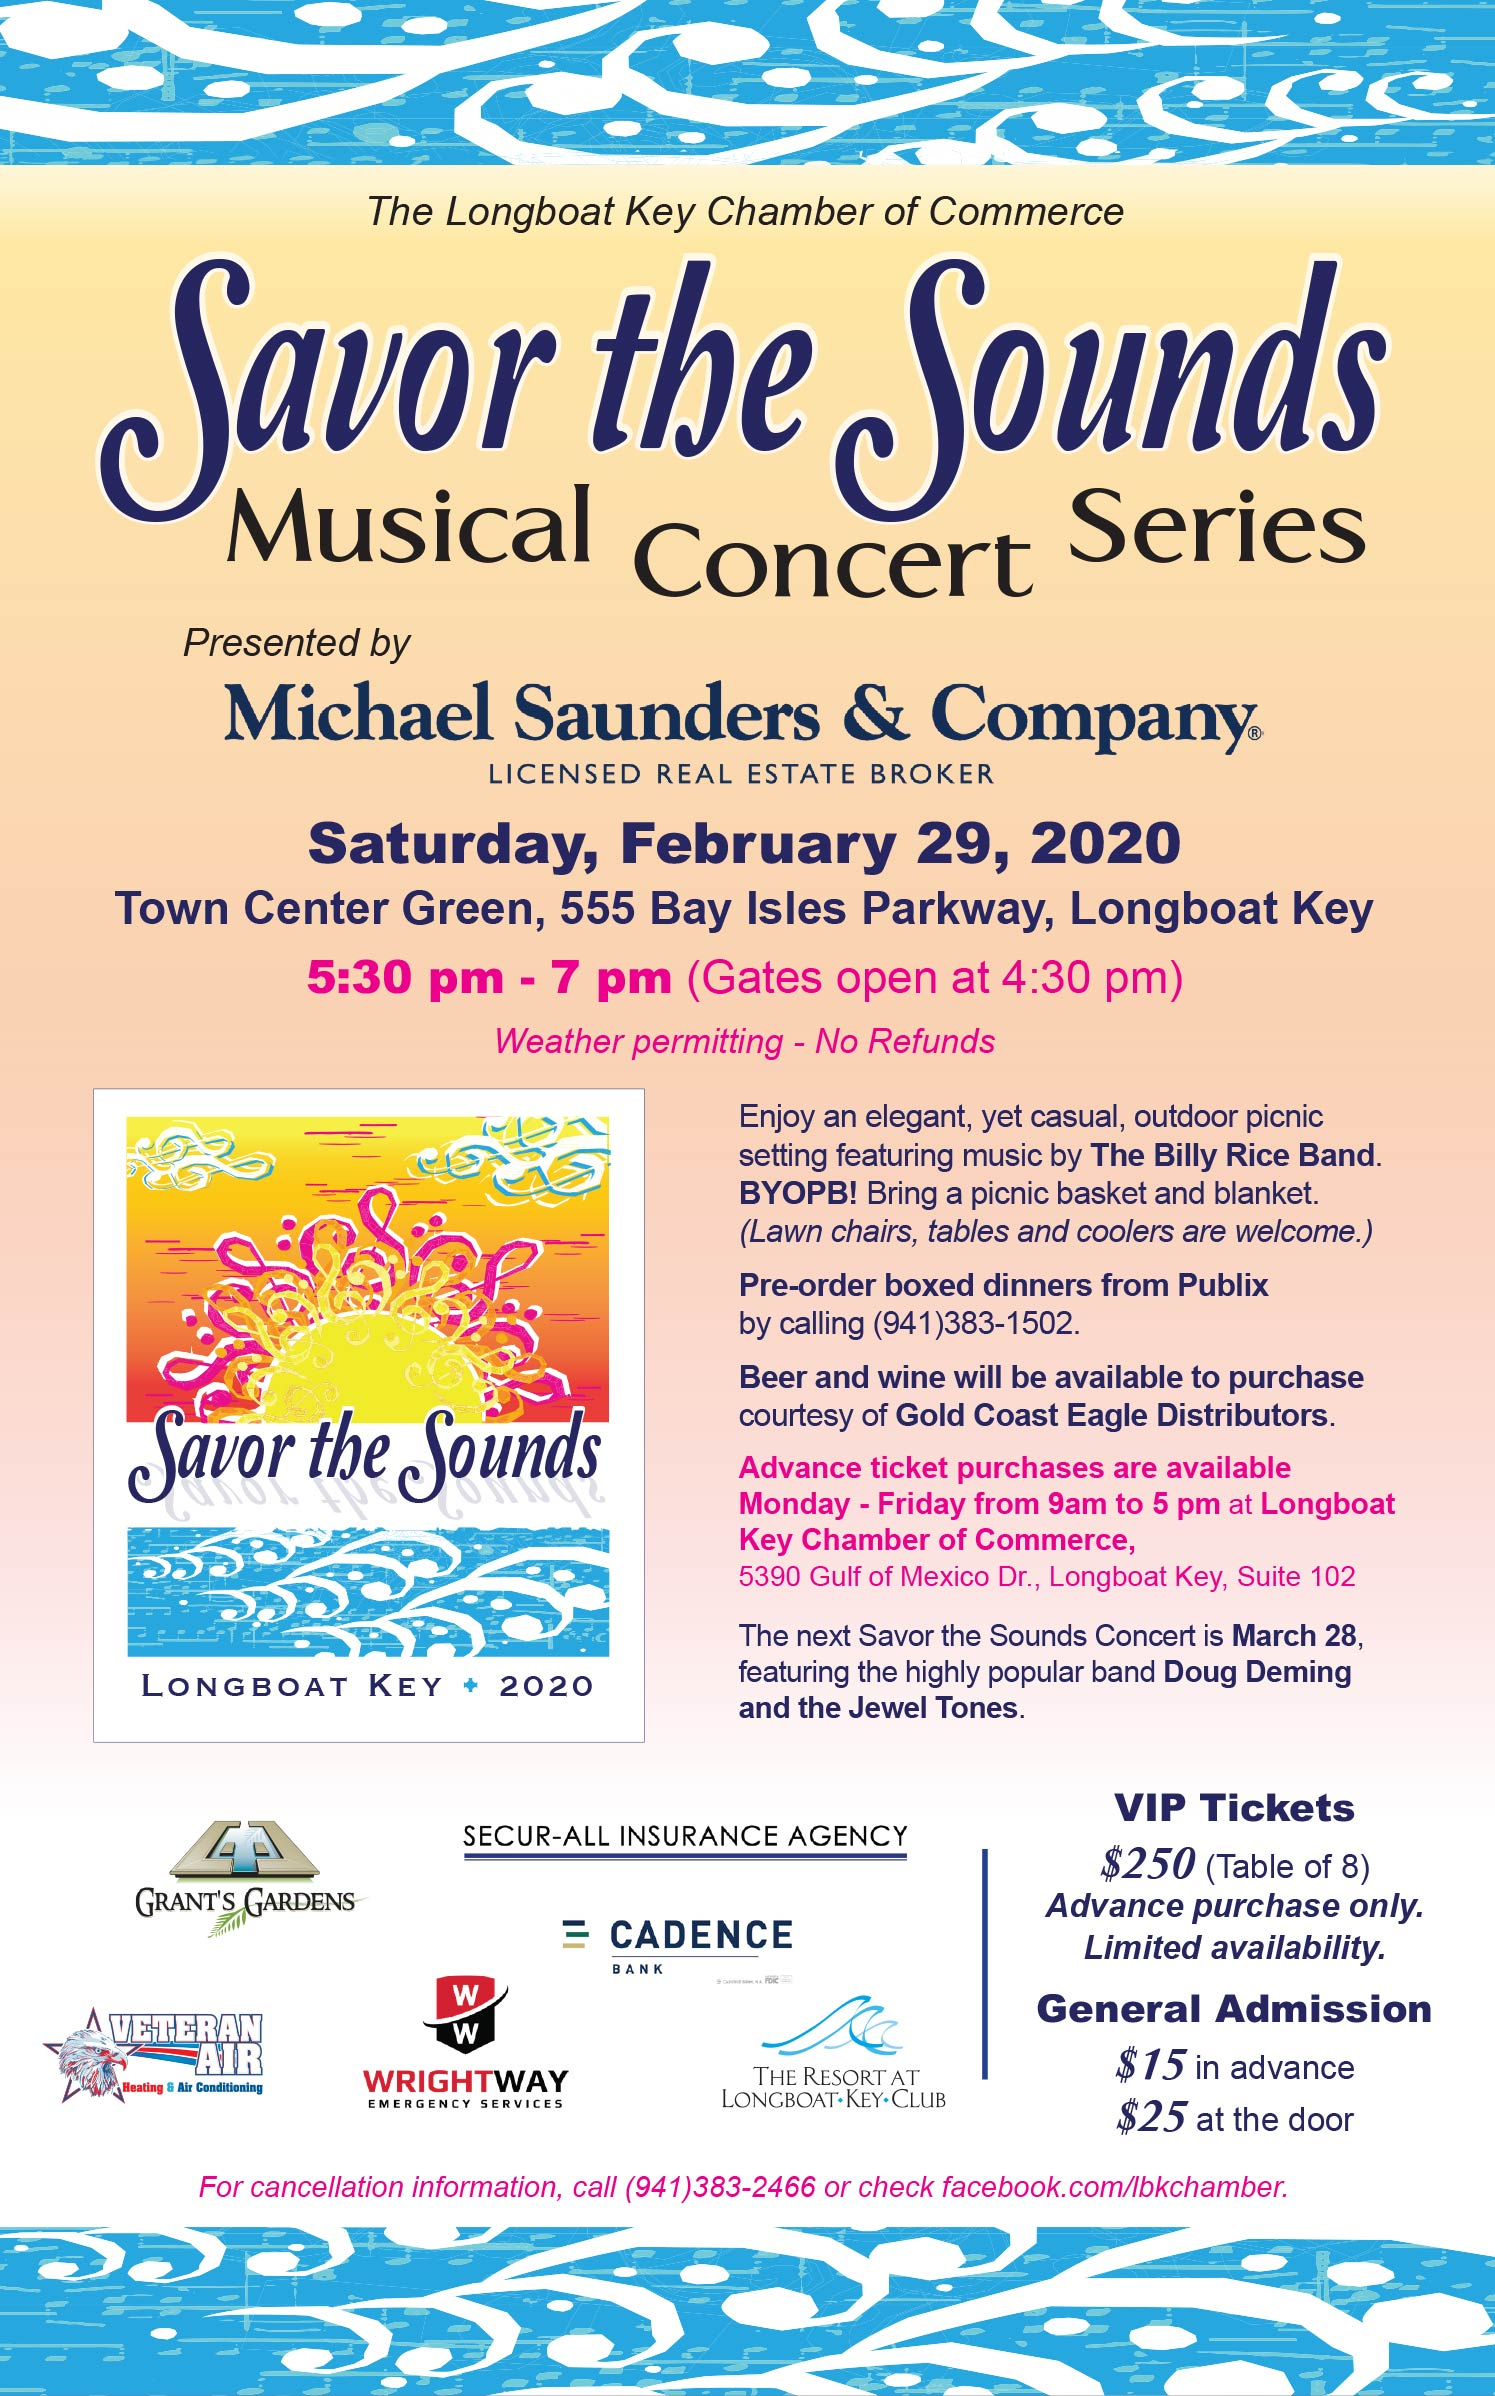 Savor the Sounds music counter series. Saturday, February 29, 2020. 5:30pm - 7pm. Town Ceenter Green. 555 Bay Isles Parkway, Longboat Key